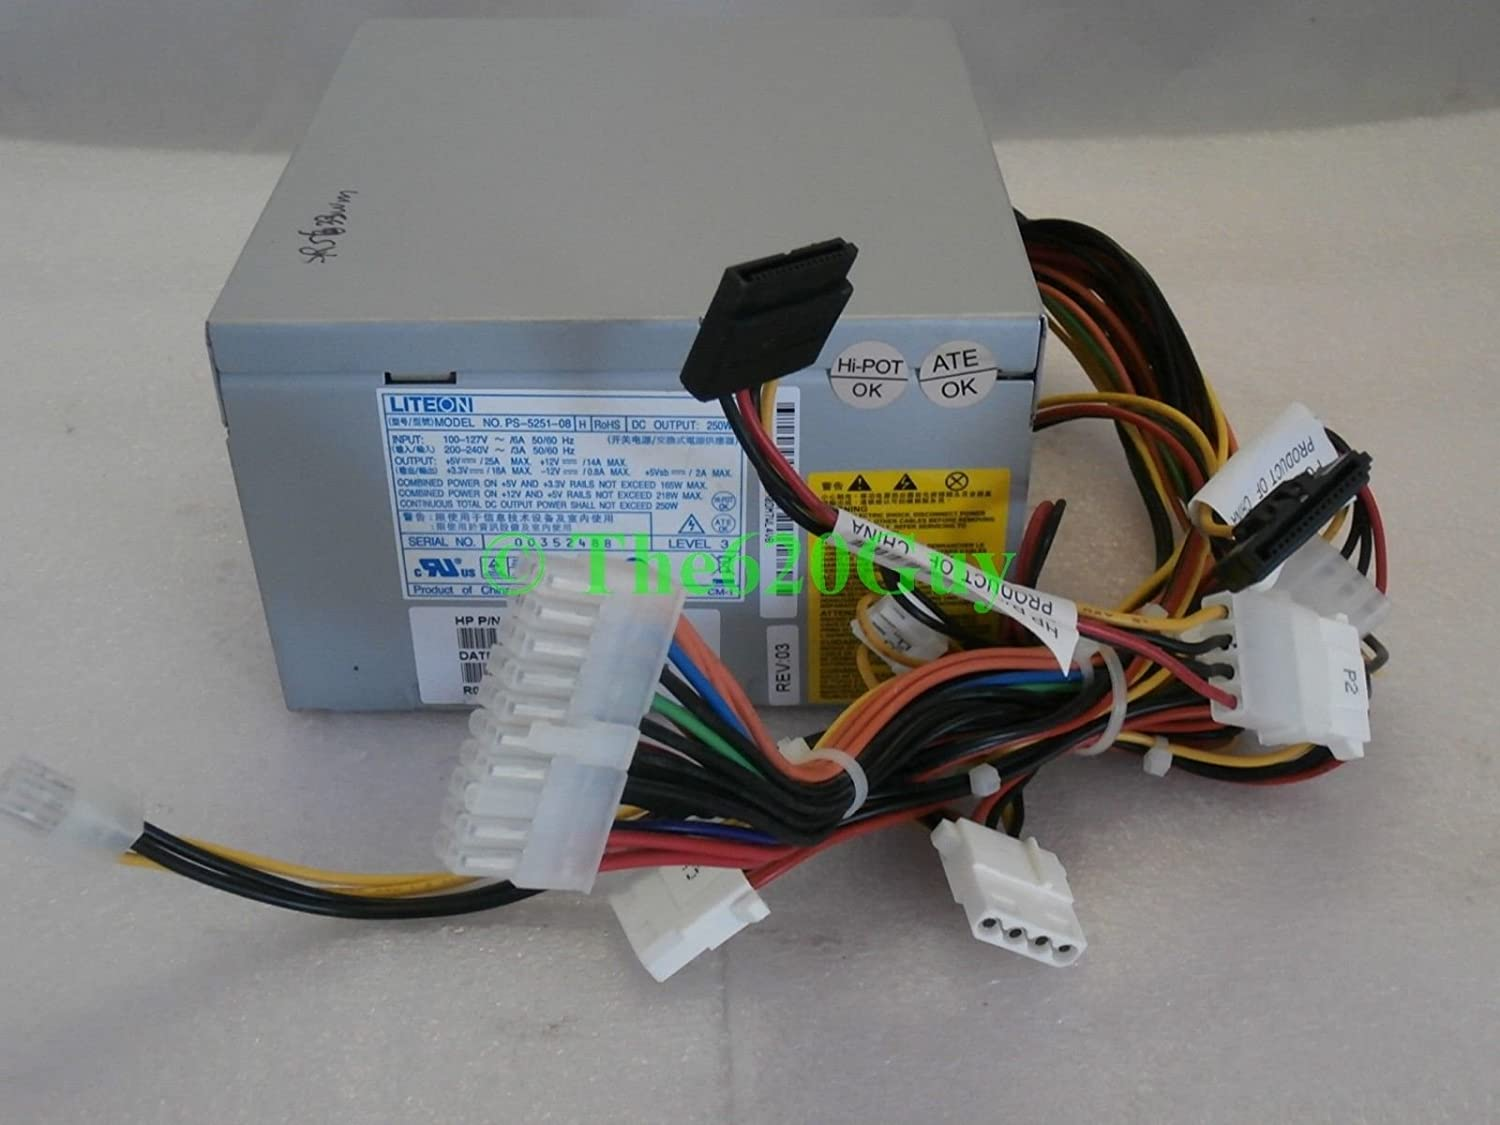 HP Compaq Pavilion Presario 250W ATX Power Supply 5188-2622 Lite-On PS-5251-08 H